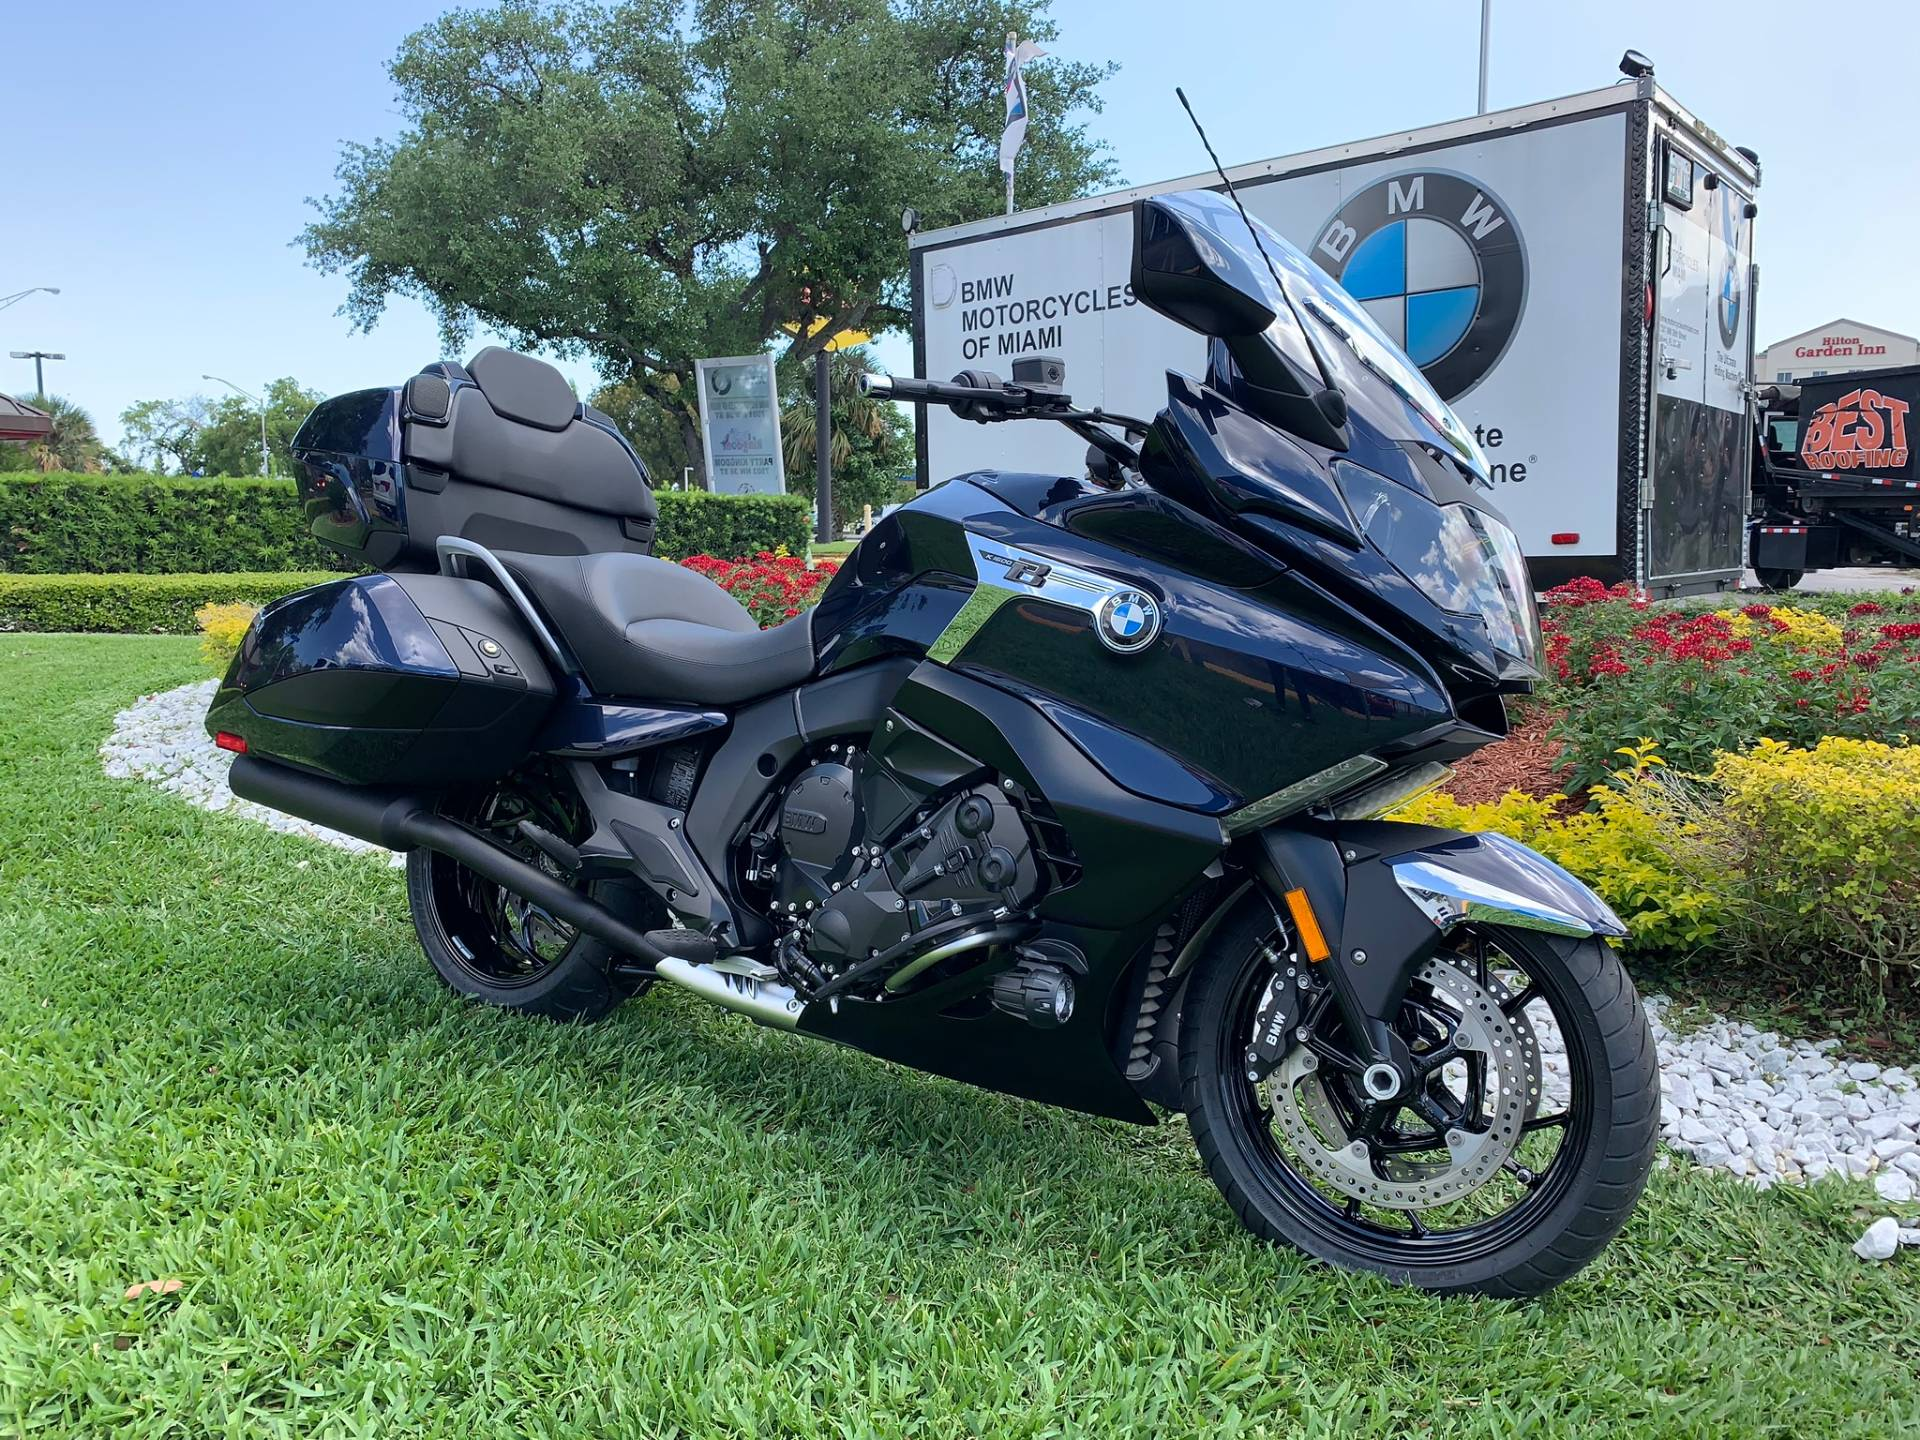 New 2019 BMW K 1600 B for sale, BMW K 1600B for sale, BMW Motorcycle K1600B, new BMW Bagger, Gran America. BMW Motorcycles of Miami, Motorcycles of Miami, Motorcycles Miami - Photo 22